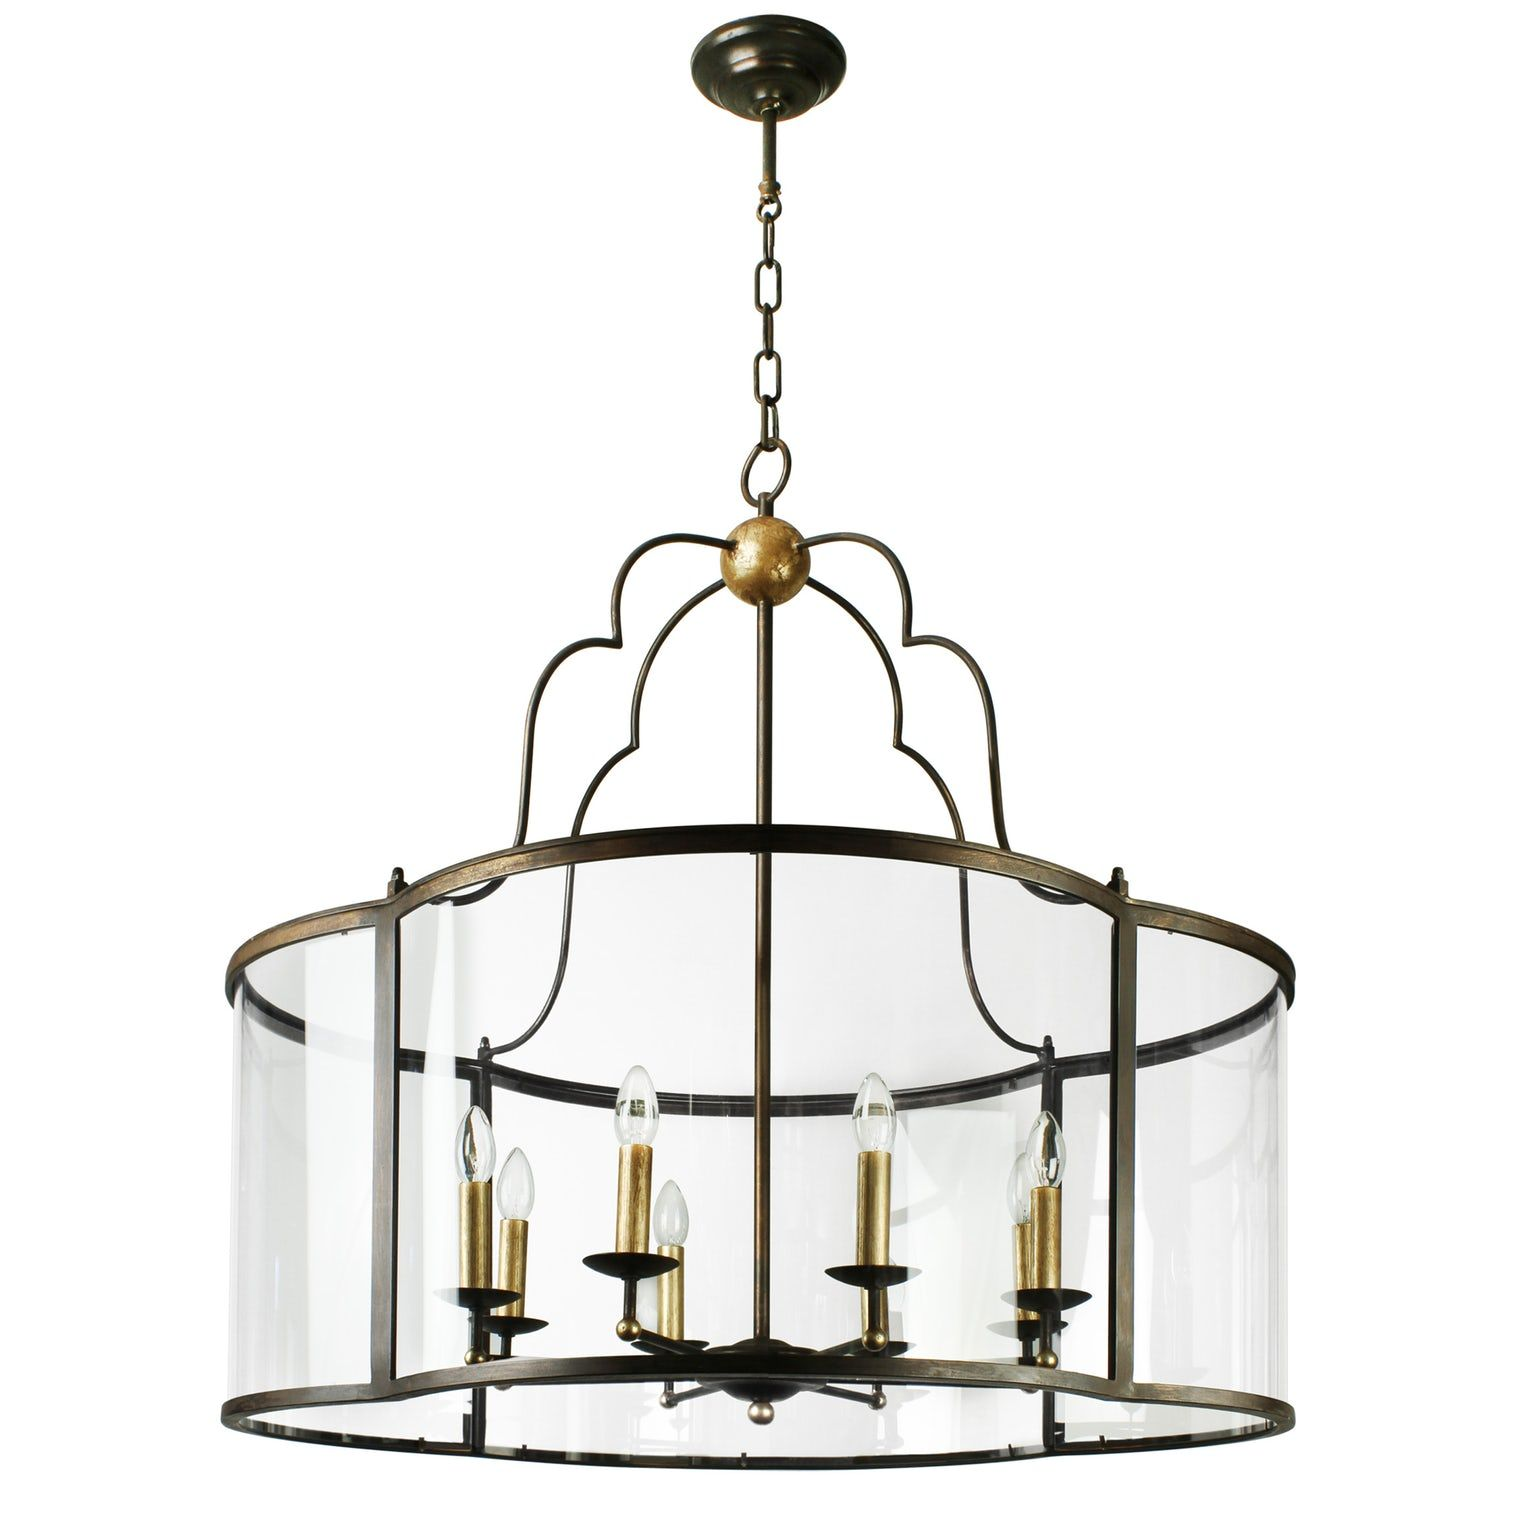 Arezzo metal chandelier modern traditional mid century modern and arezzo metal chandelier arubaitofo Gallery